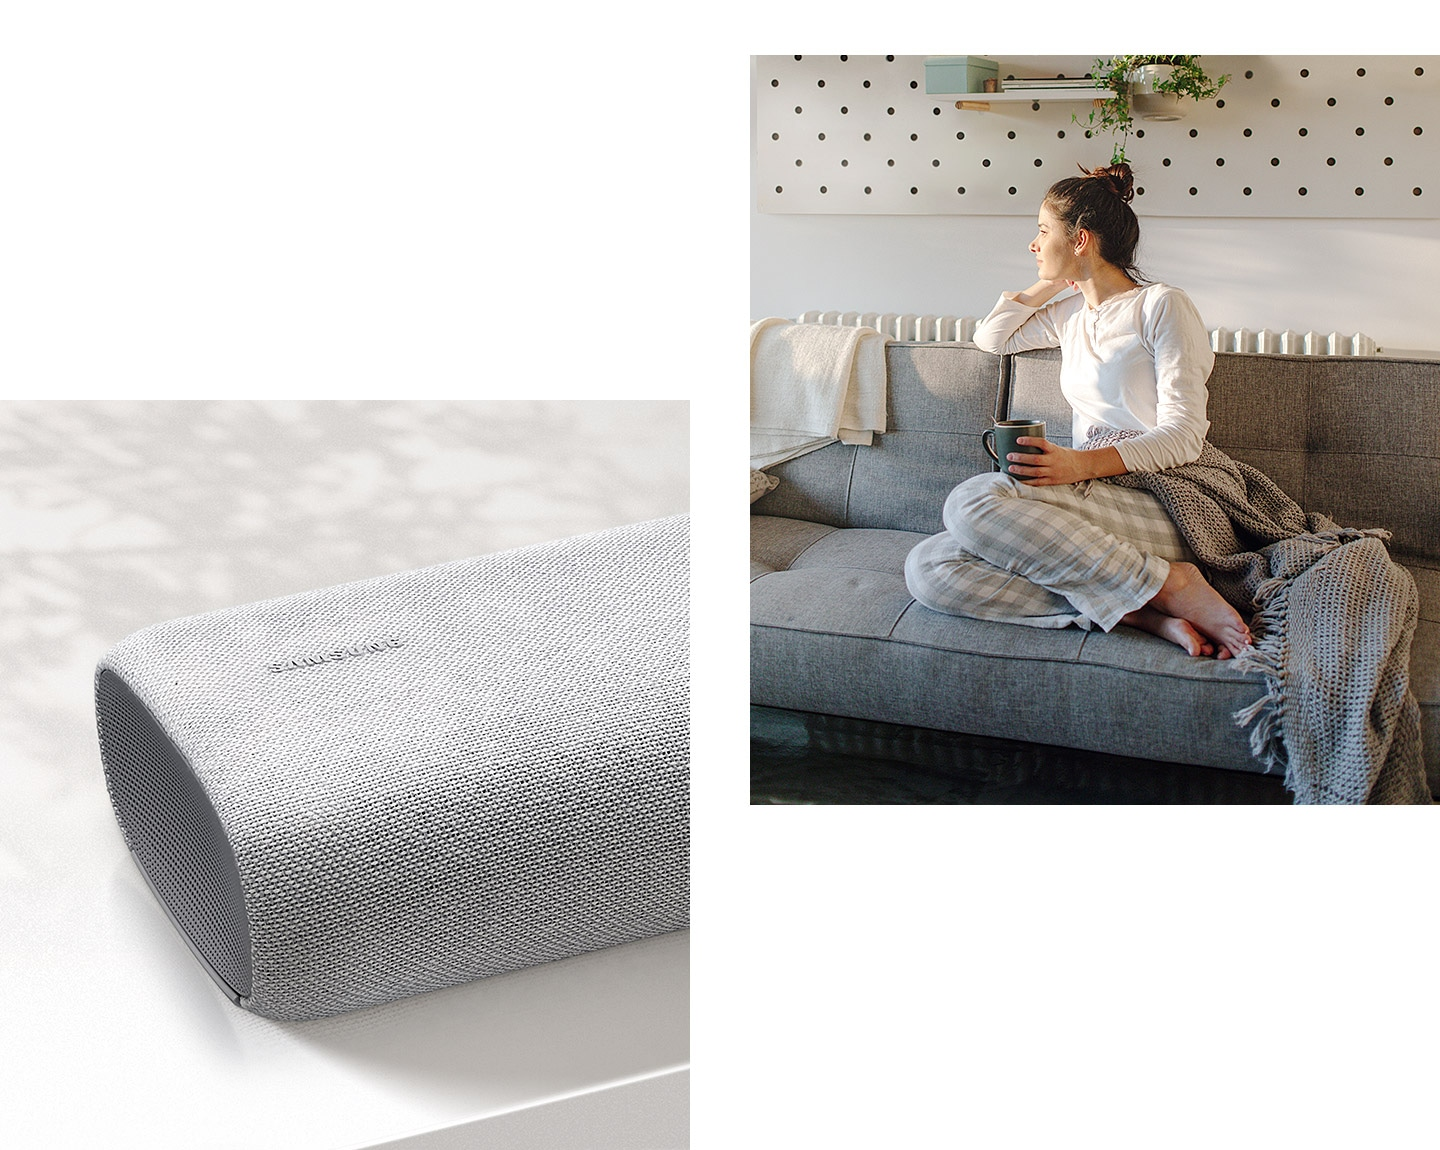 A combination of product and lifestyle images demonstrates how the S61A soundbar All-in-one design aesthetics blend into any room environment.